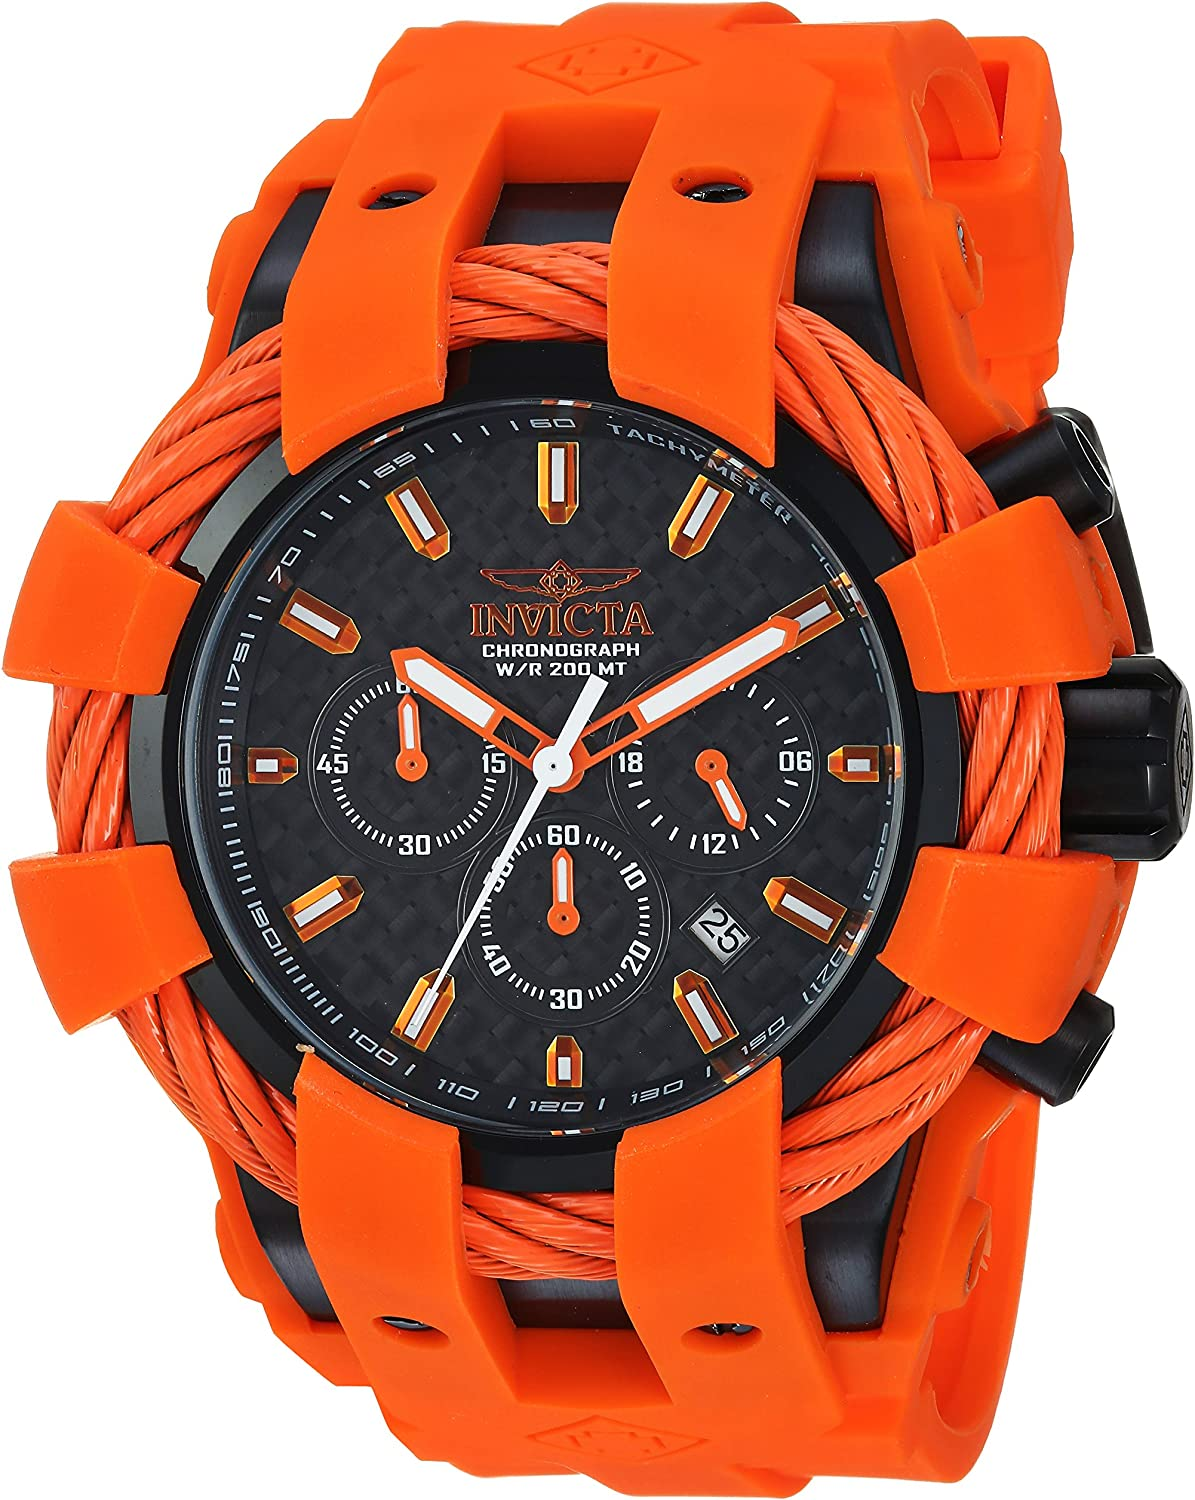 Invicta Men s Bolt Stainless Steel Quartz Watch with Silicone Strap, Orange, 30 Model 23872